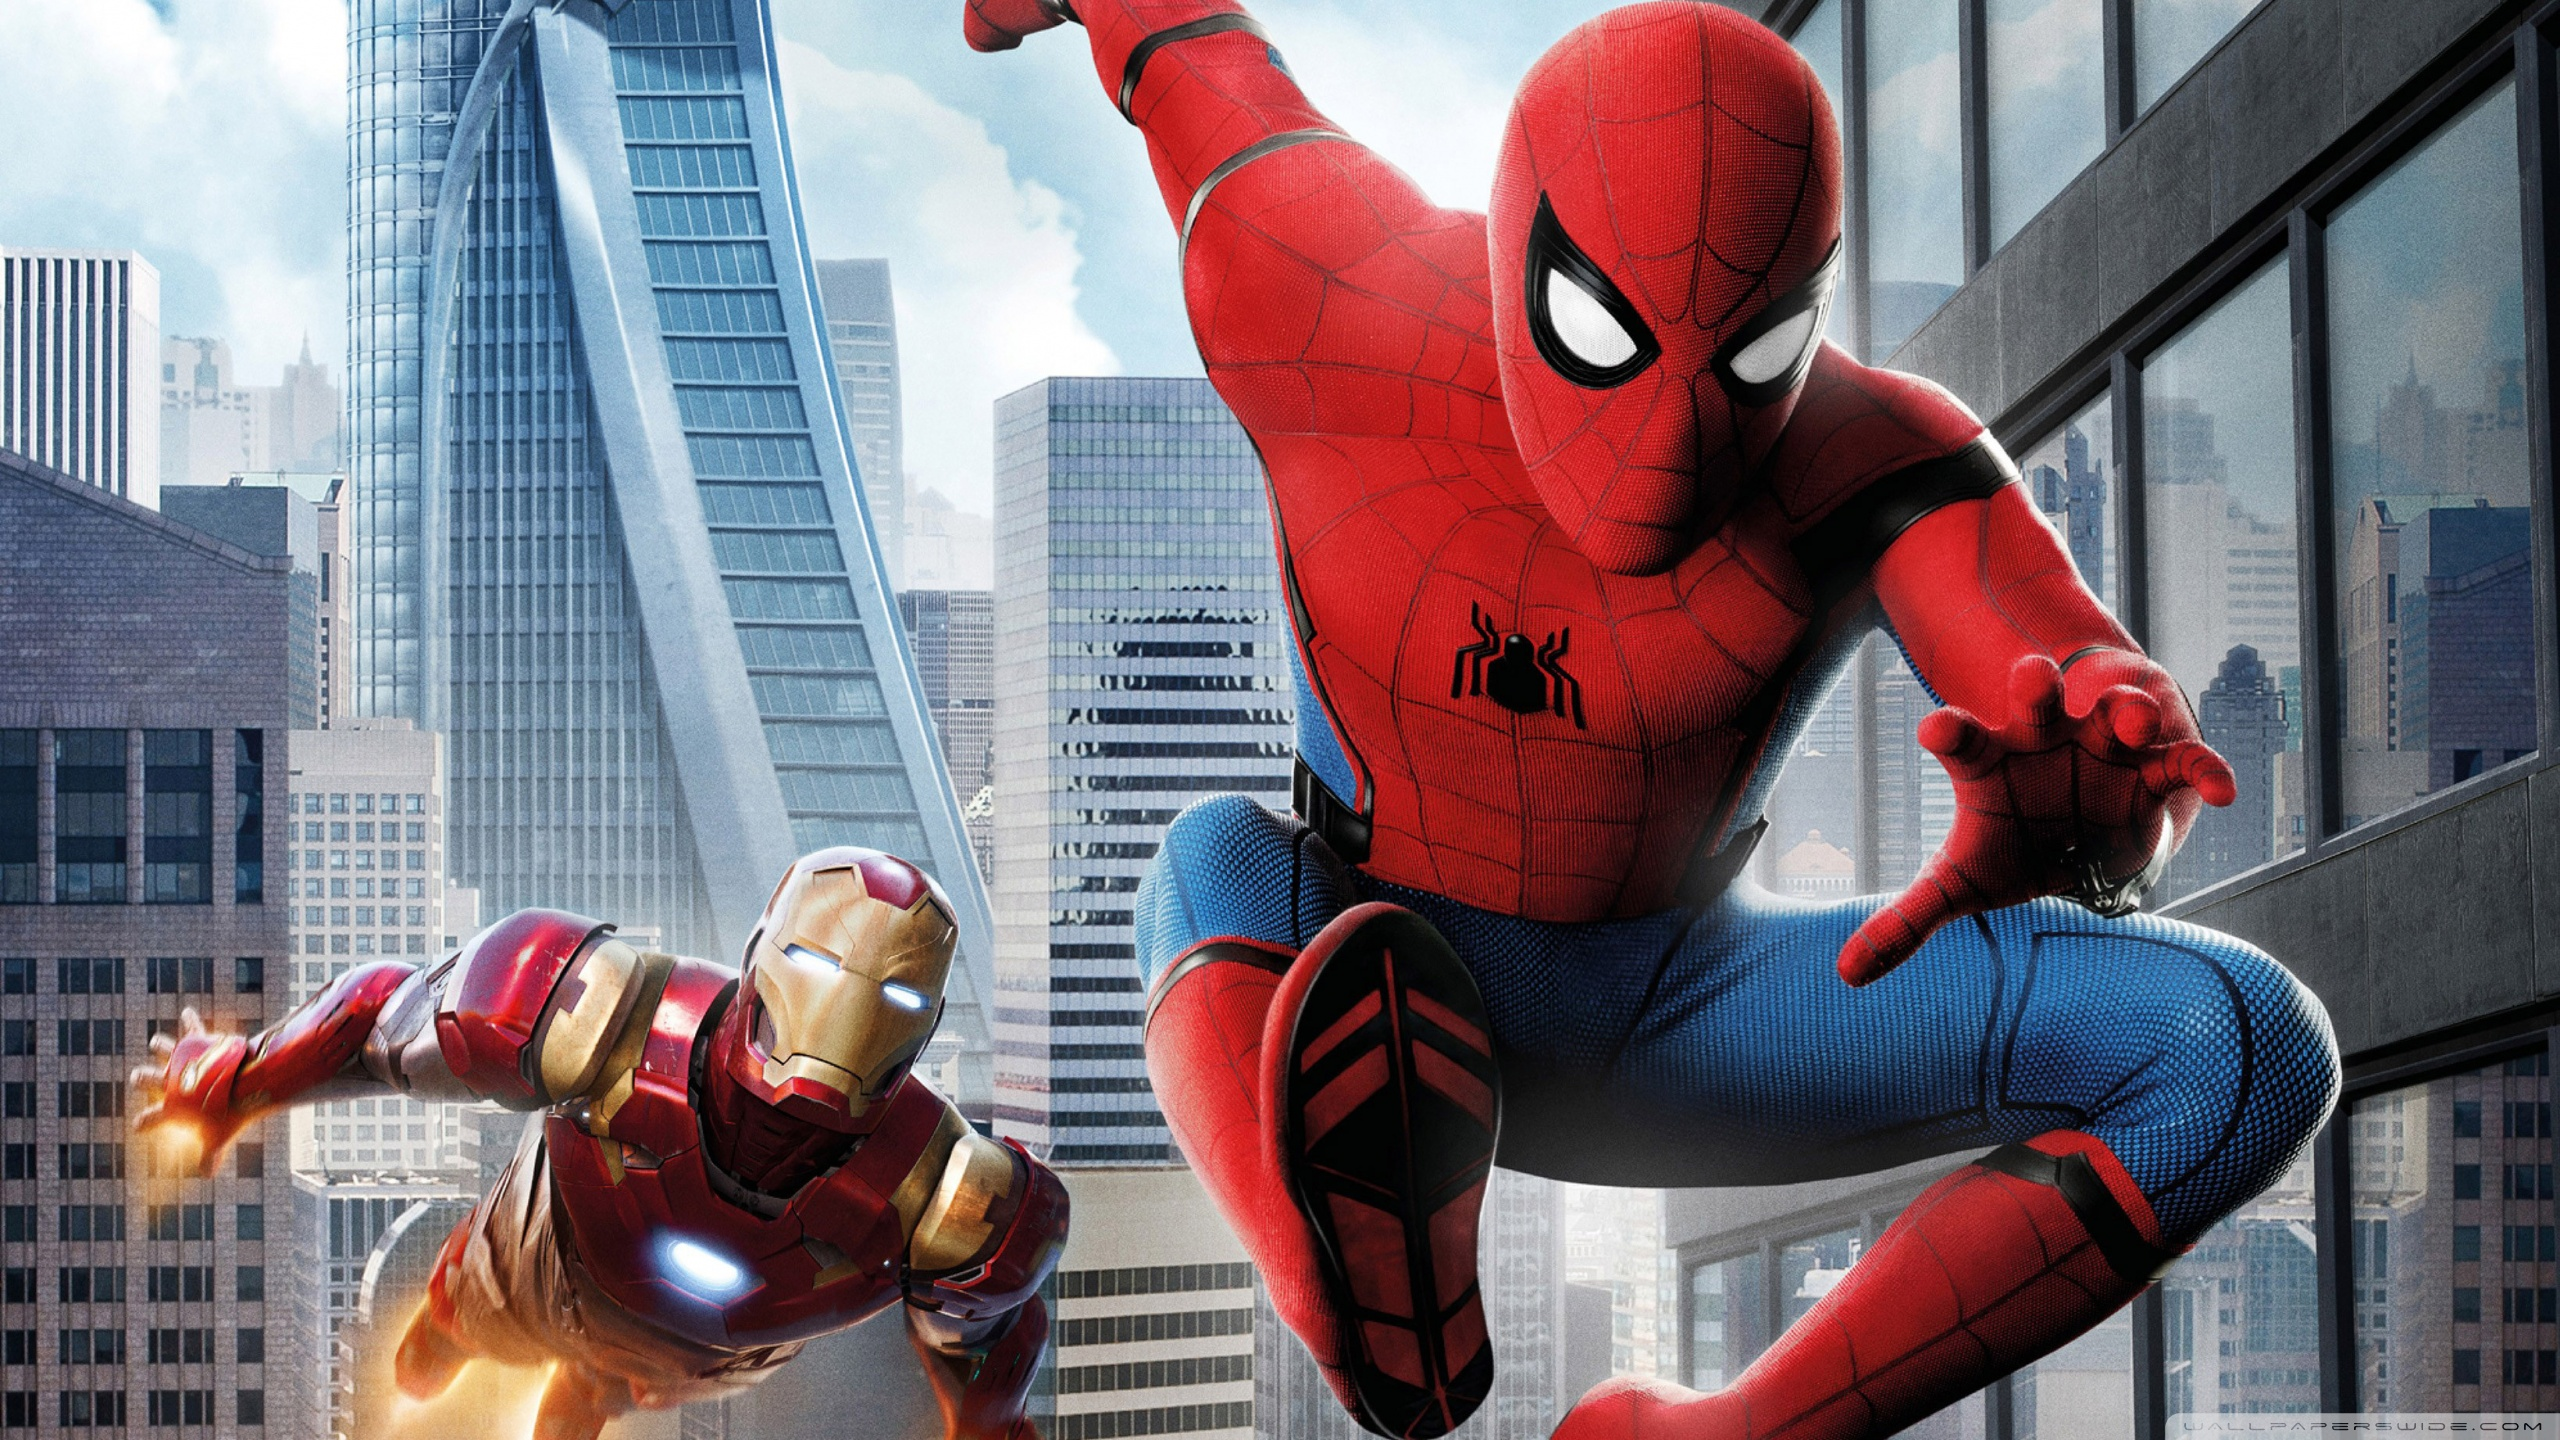 Spiderman 4k Wallpapers For Your Desktop Or Mobile Screen Free And